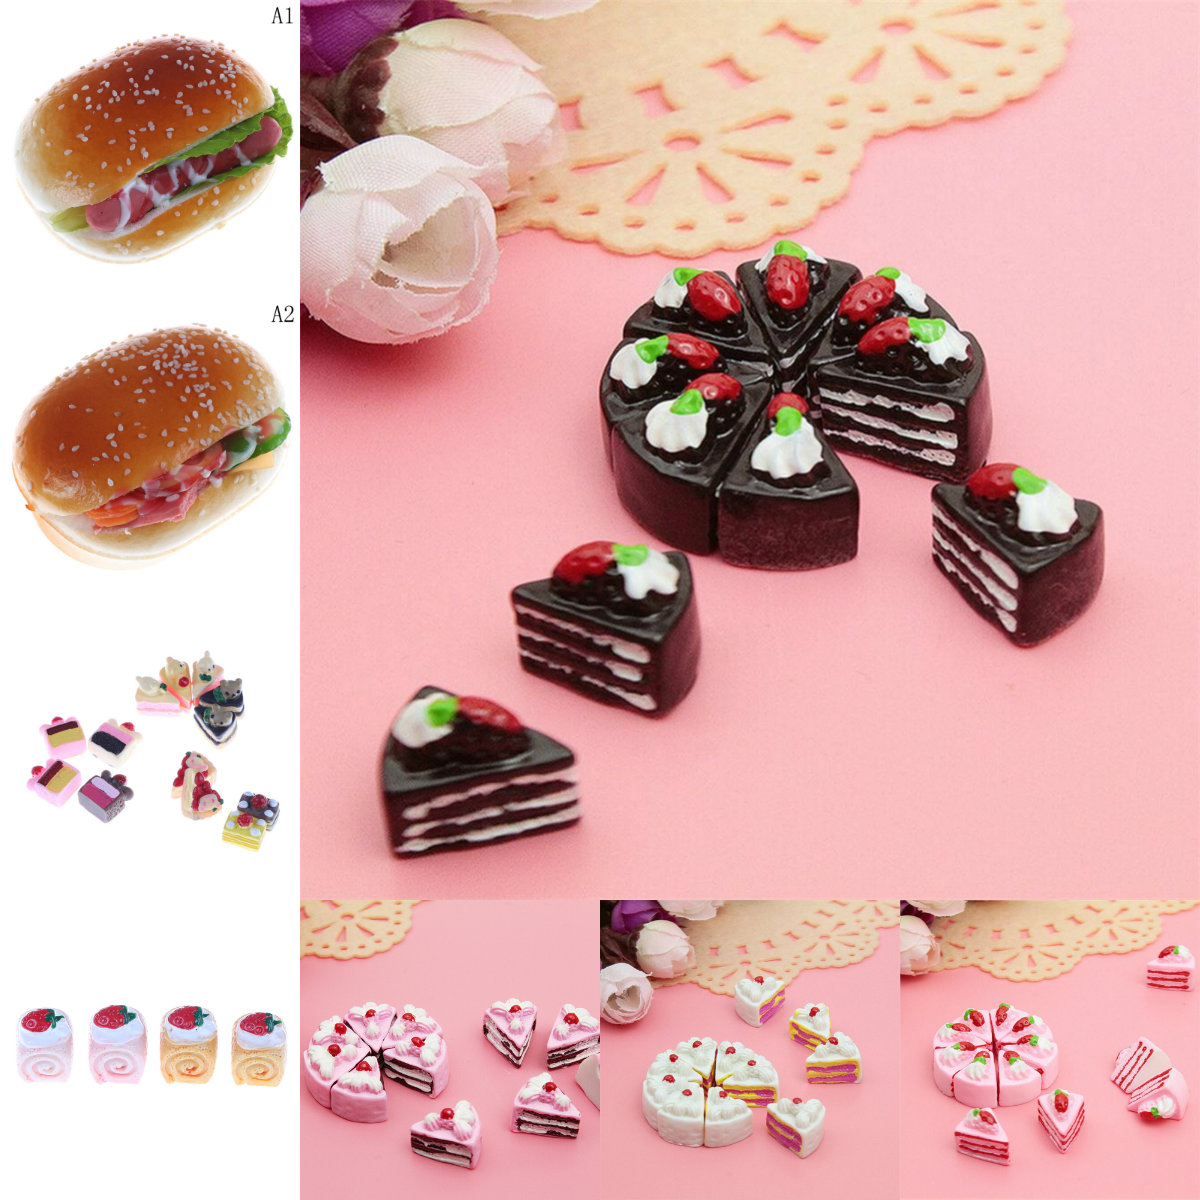 10PCS Simulation Mini Resin Cake Dollhouse Miniature Food Scene Model DIY Doll House Accessories Resin Cake Model